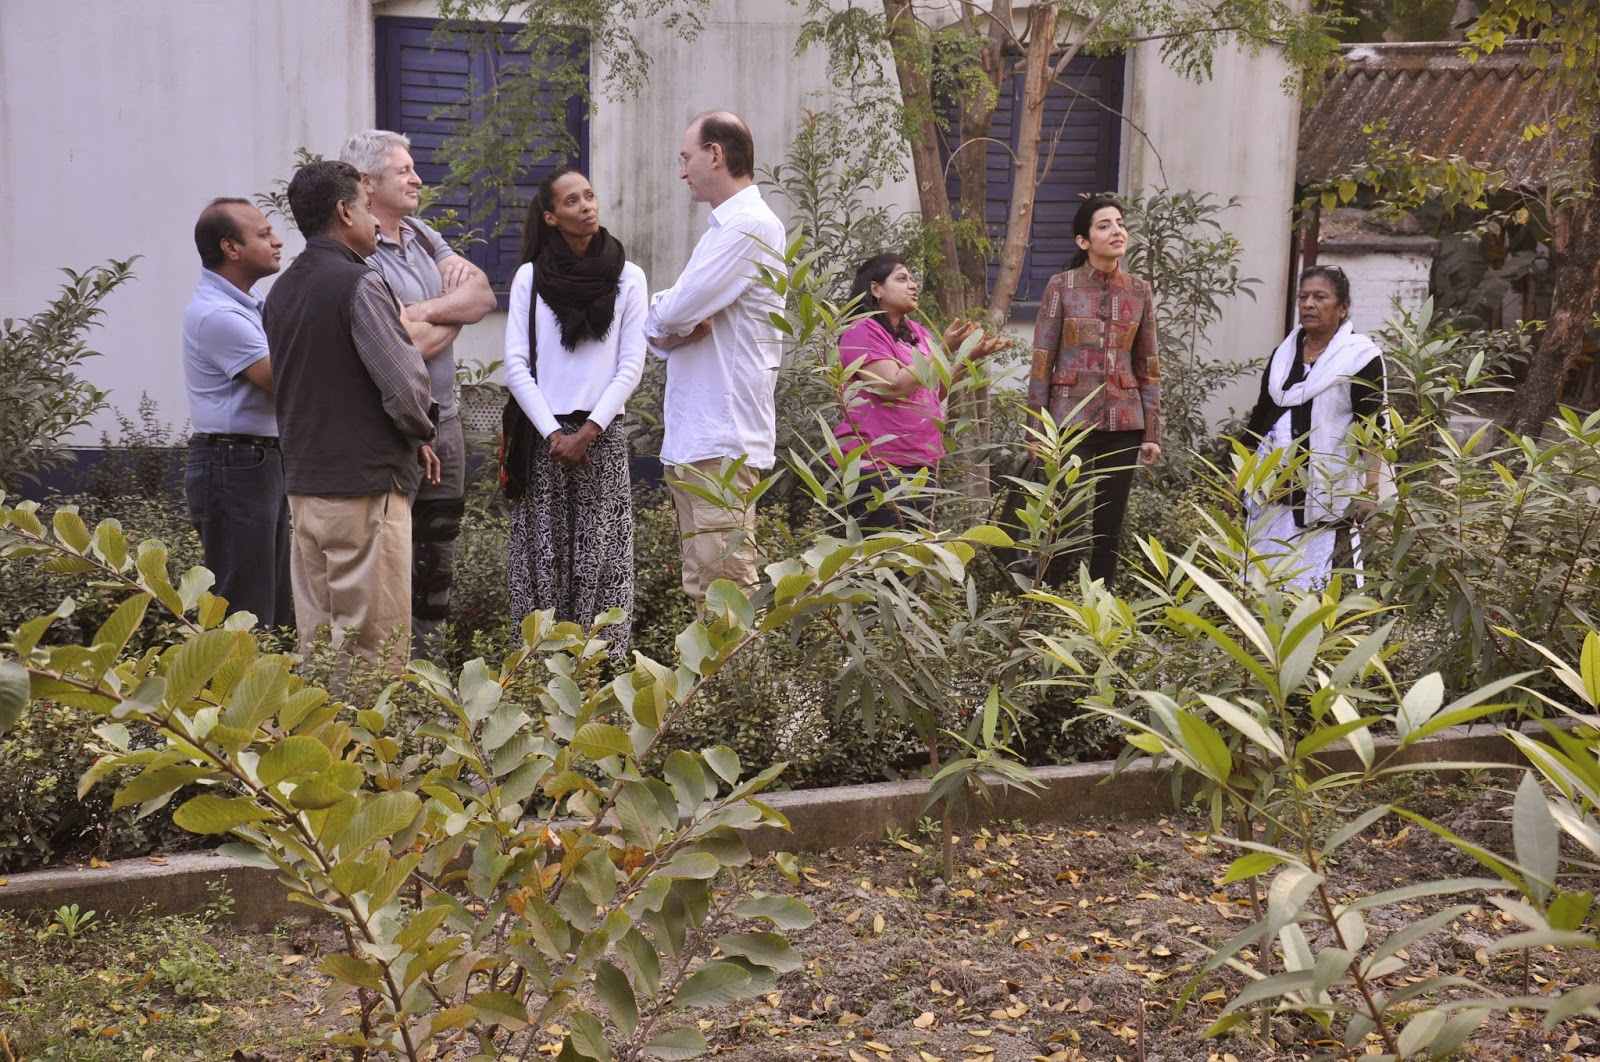 Philipp and Sara Schoeller, Walter and Delphine Raizner, planting trees in Mulvany House an old age home in Kolkata